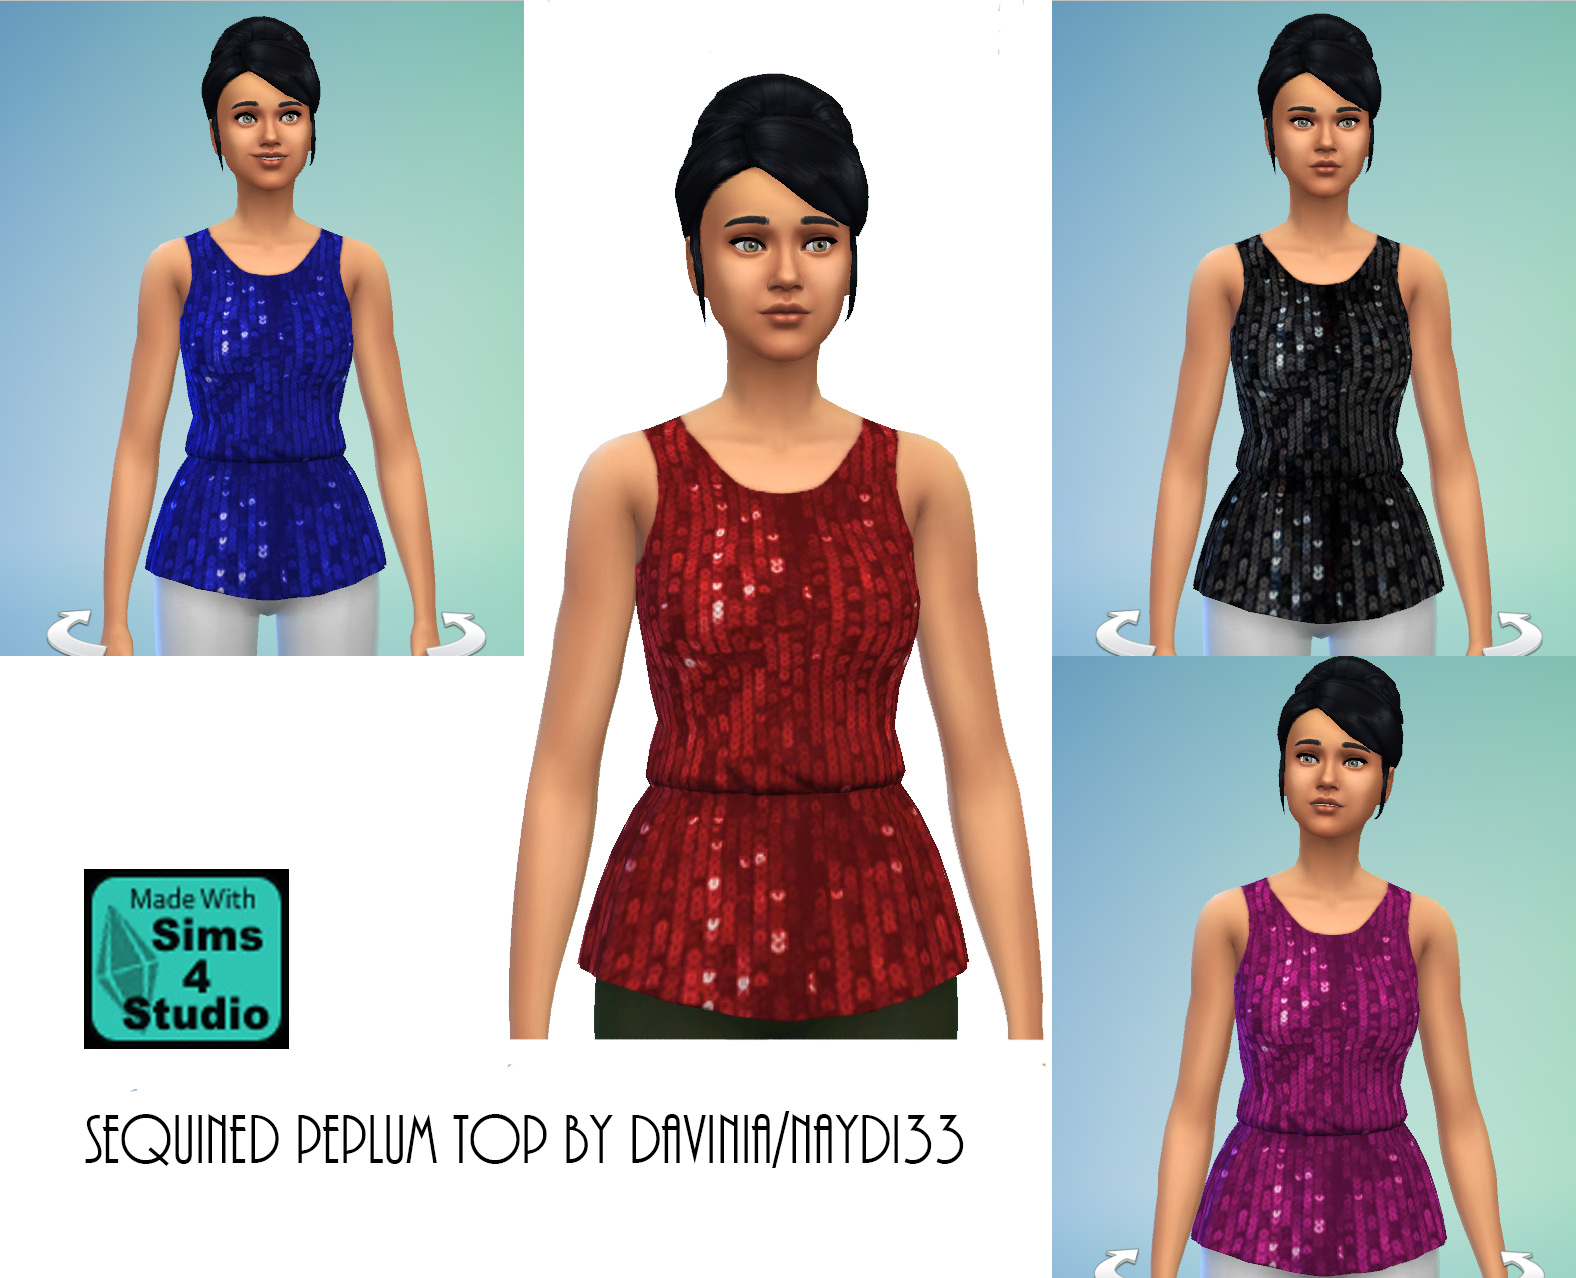 Sequined peplum top in four colors by Davinia